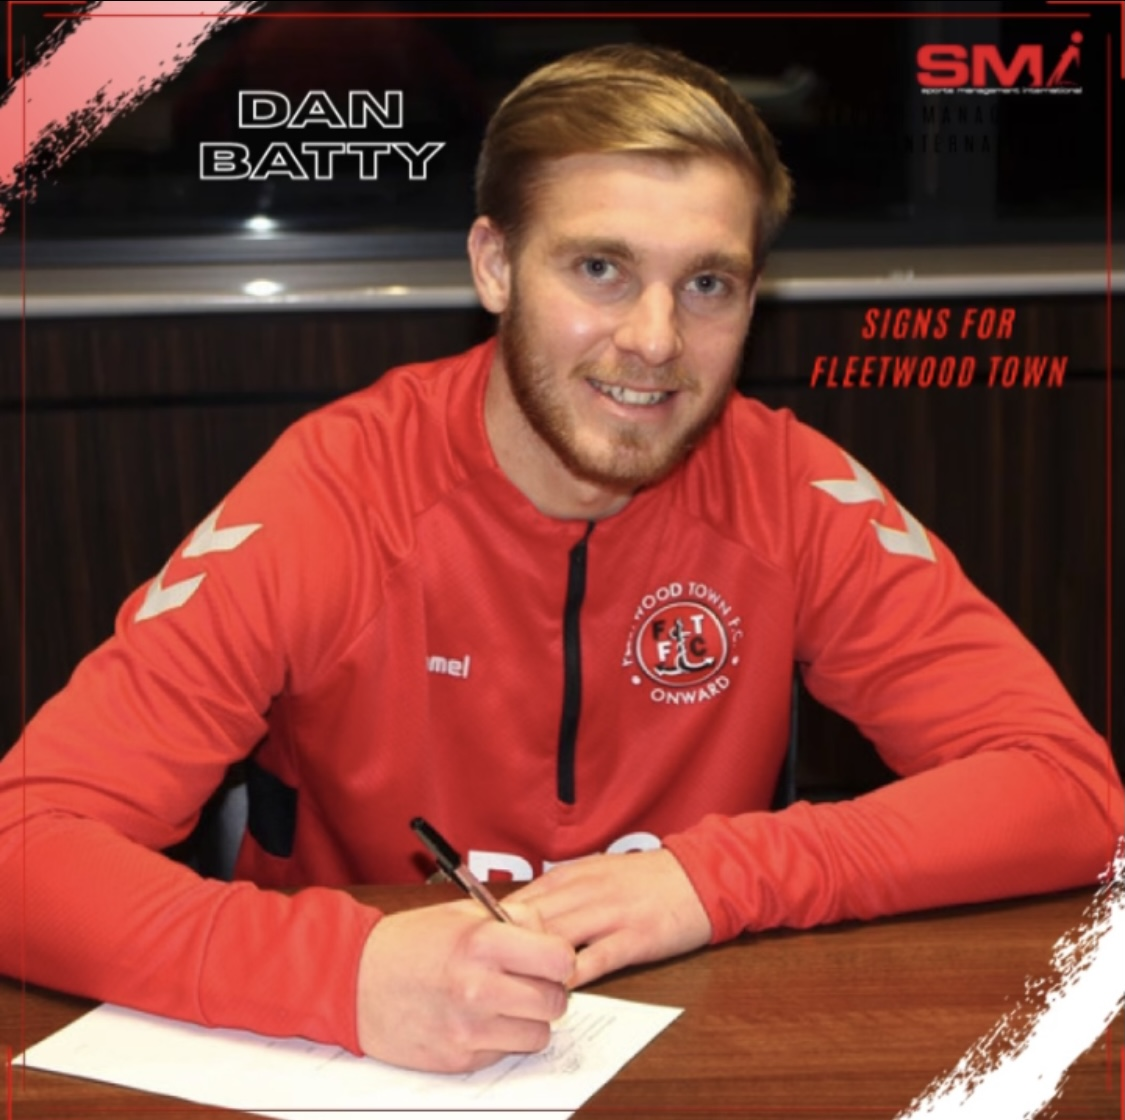 Dan Batty signs for Fleetwood Town